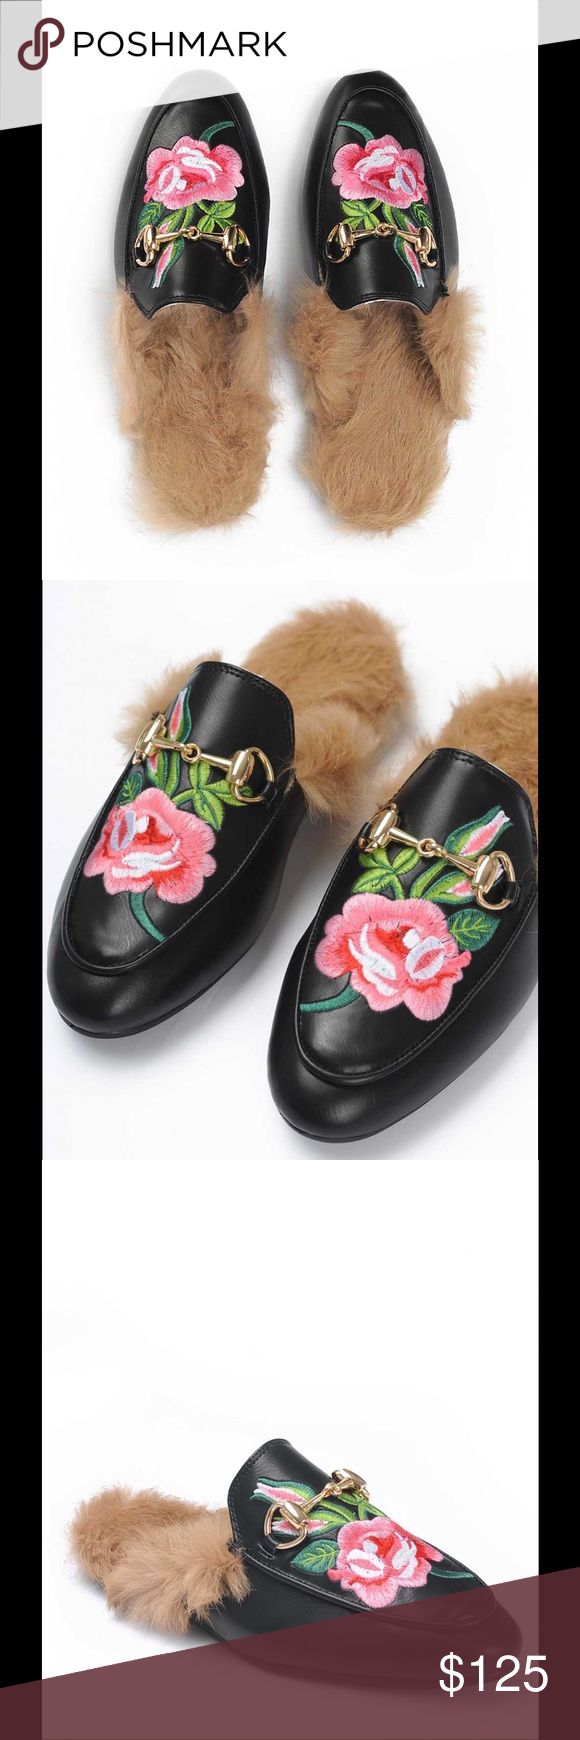 Princetown rose embroidered fur loafer Please specify size. Shipping will take approximately two weeks Shoes Flats & Loafers